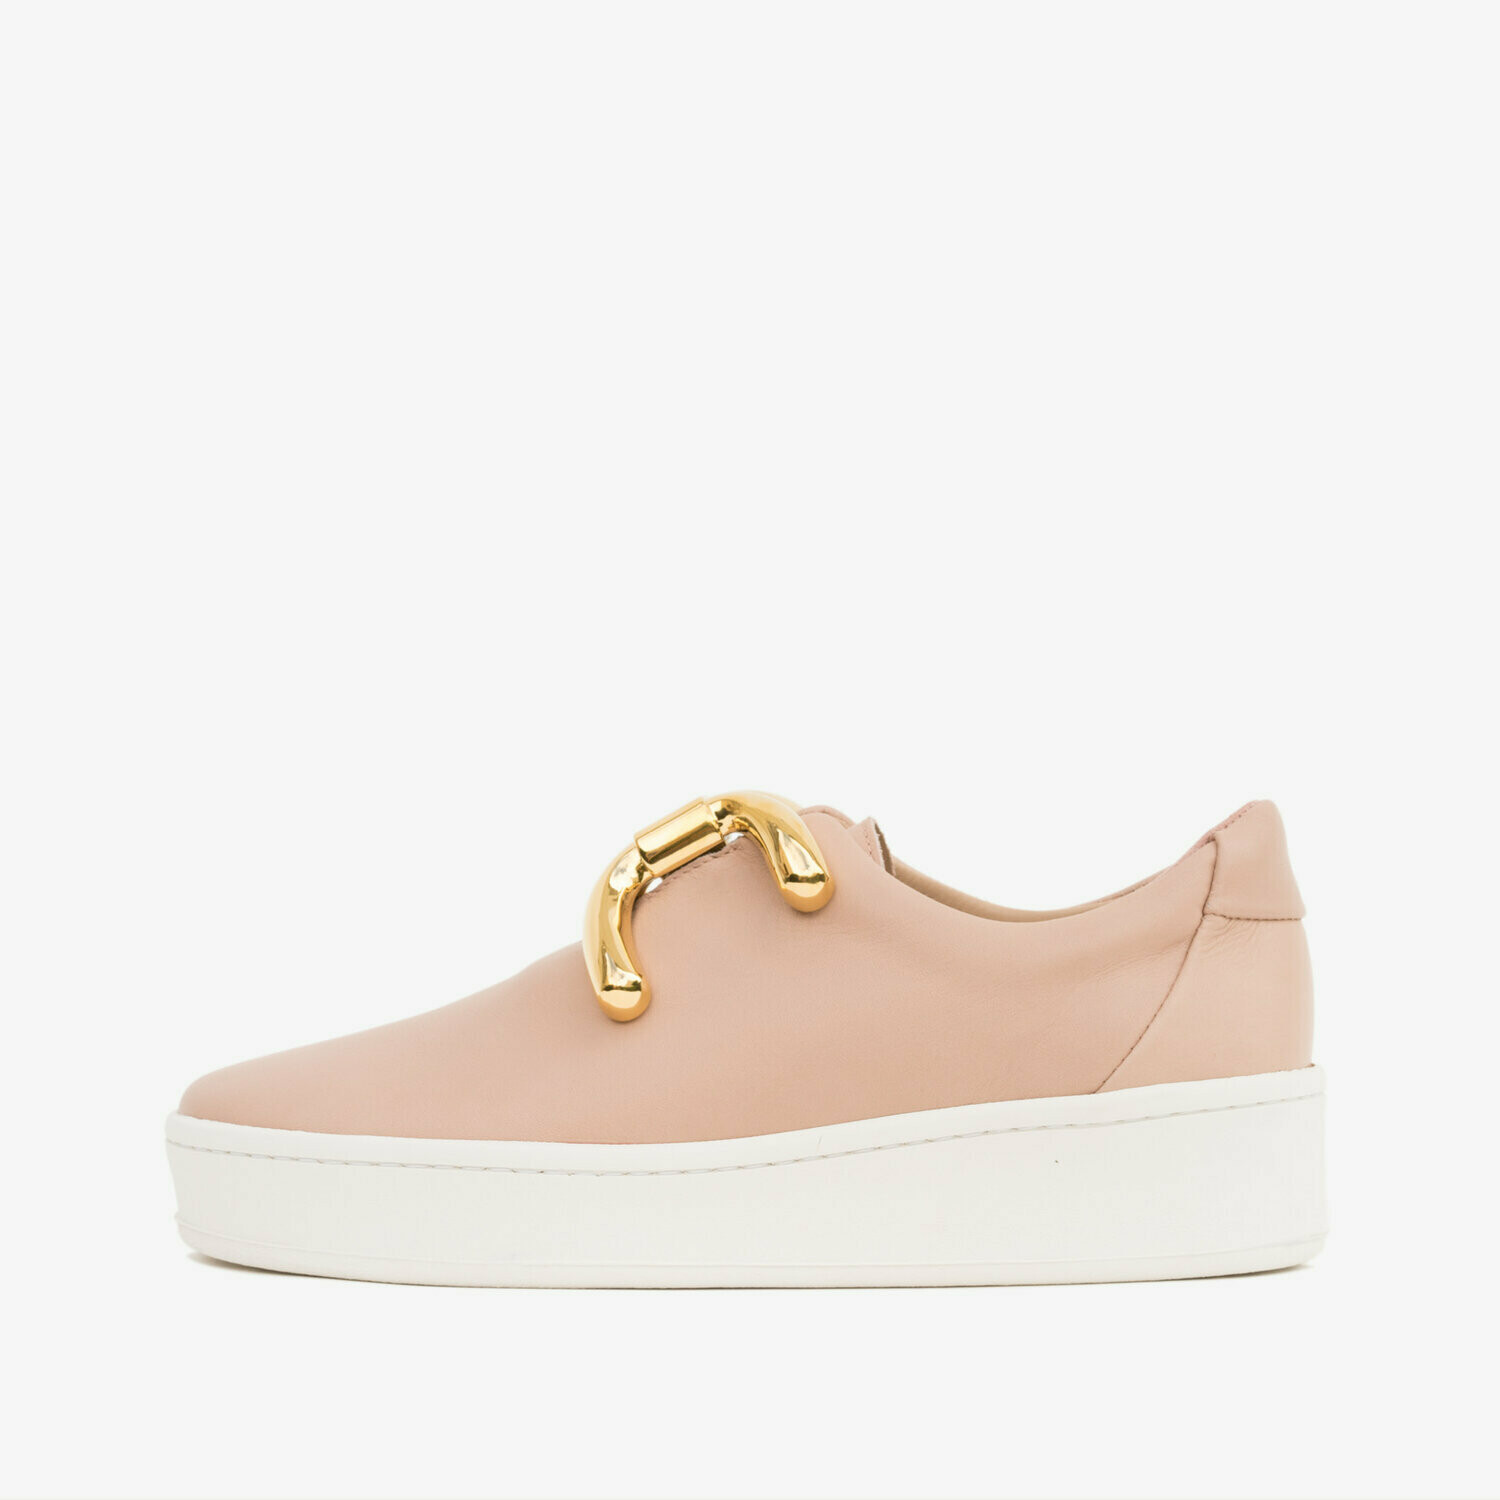 An Hour and a Shower Knot Sneaker- Pale Pink/Nude